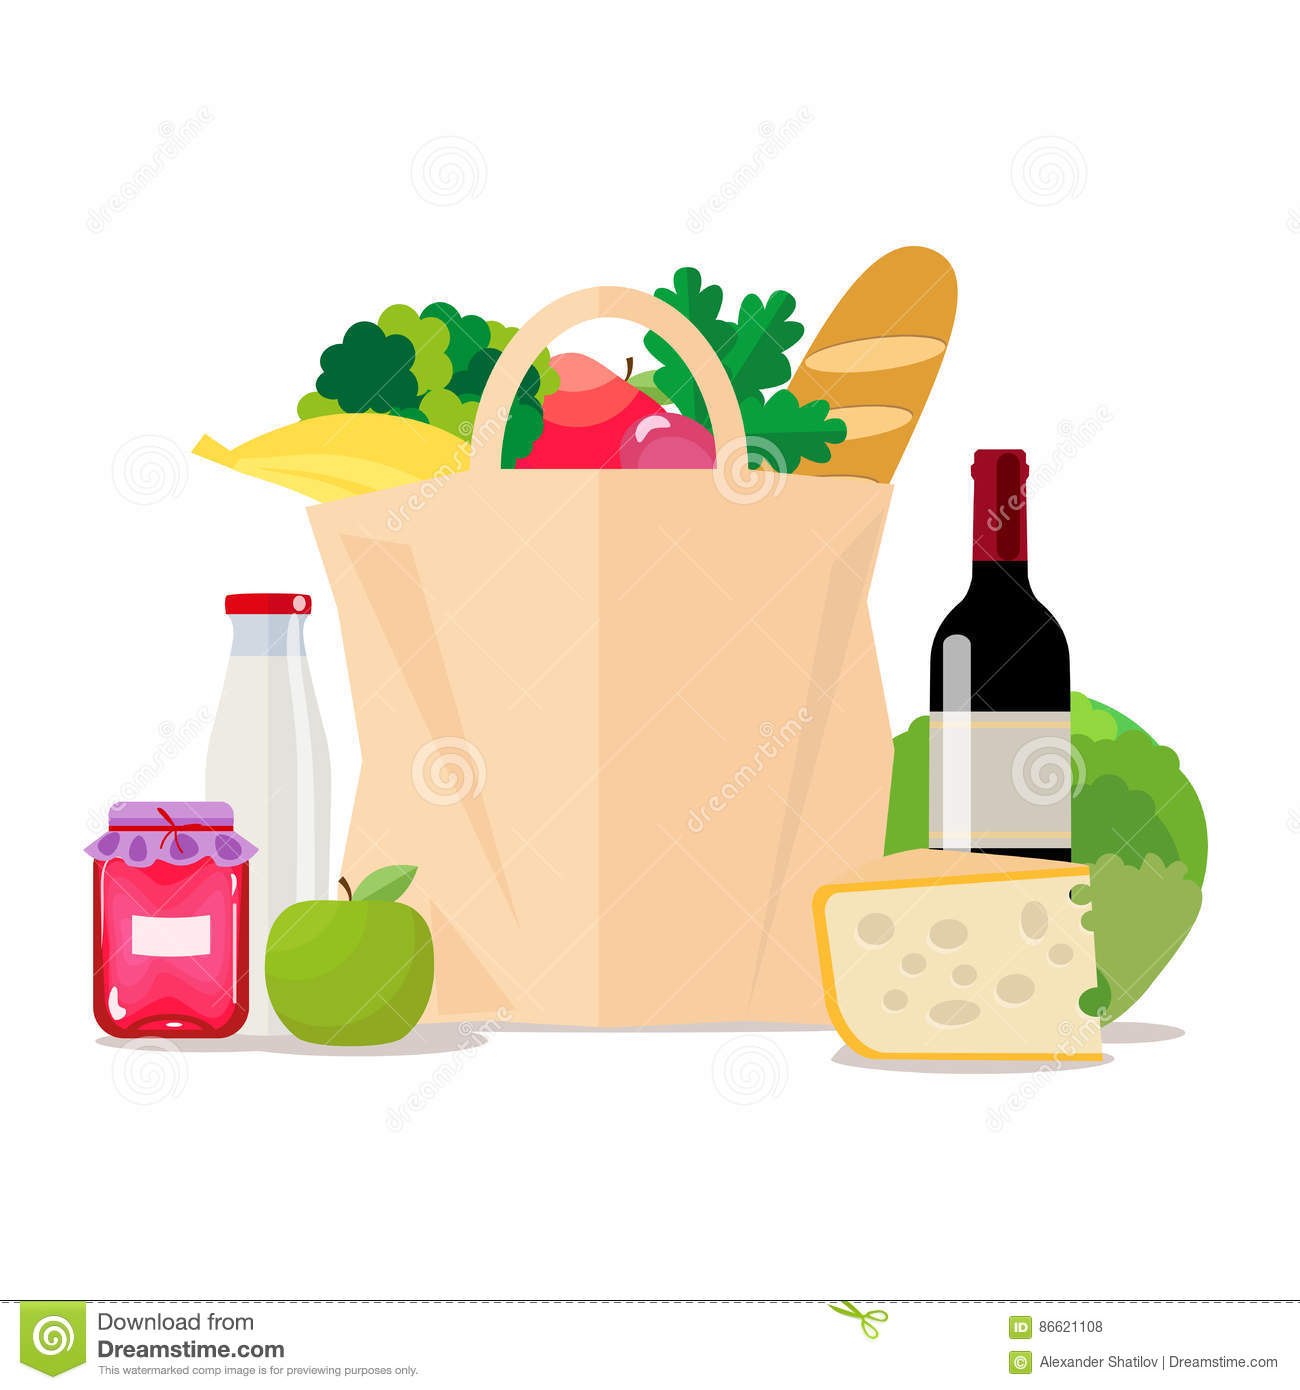 Paper bag with food. Shopping at the supermarket or grocery store. A set of healthy food. Vegetables and fruits, wine